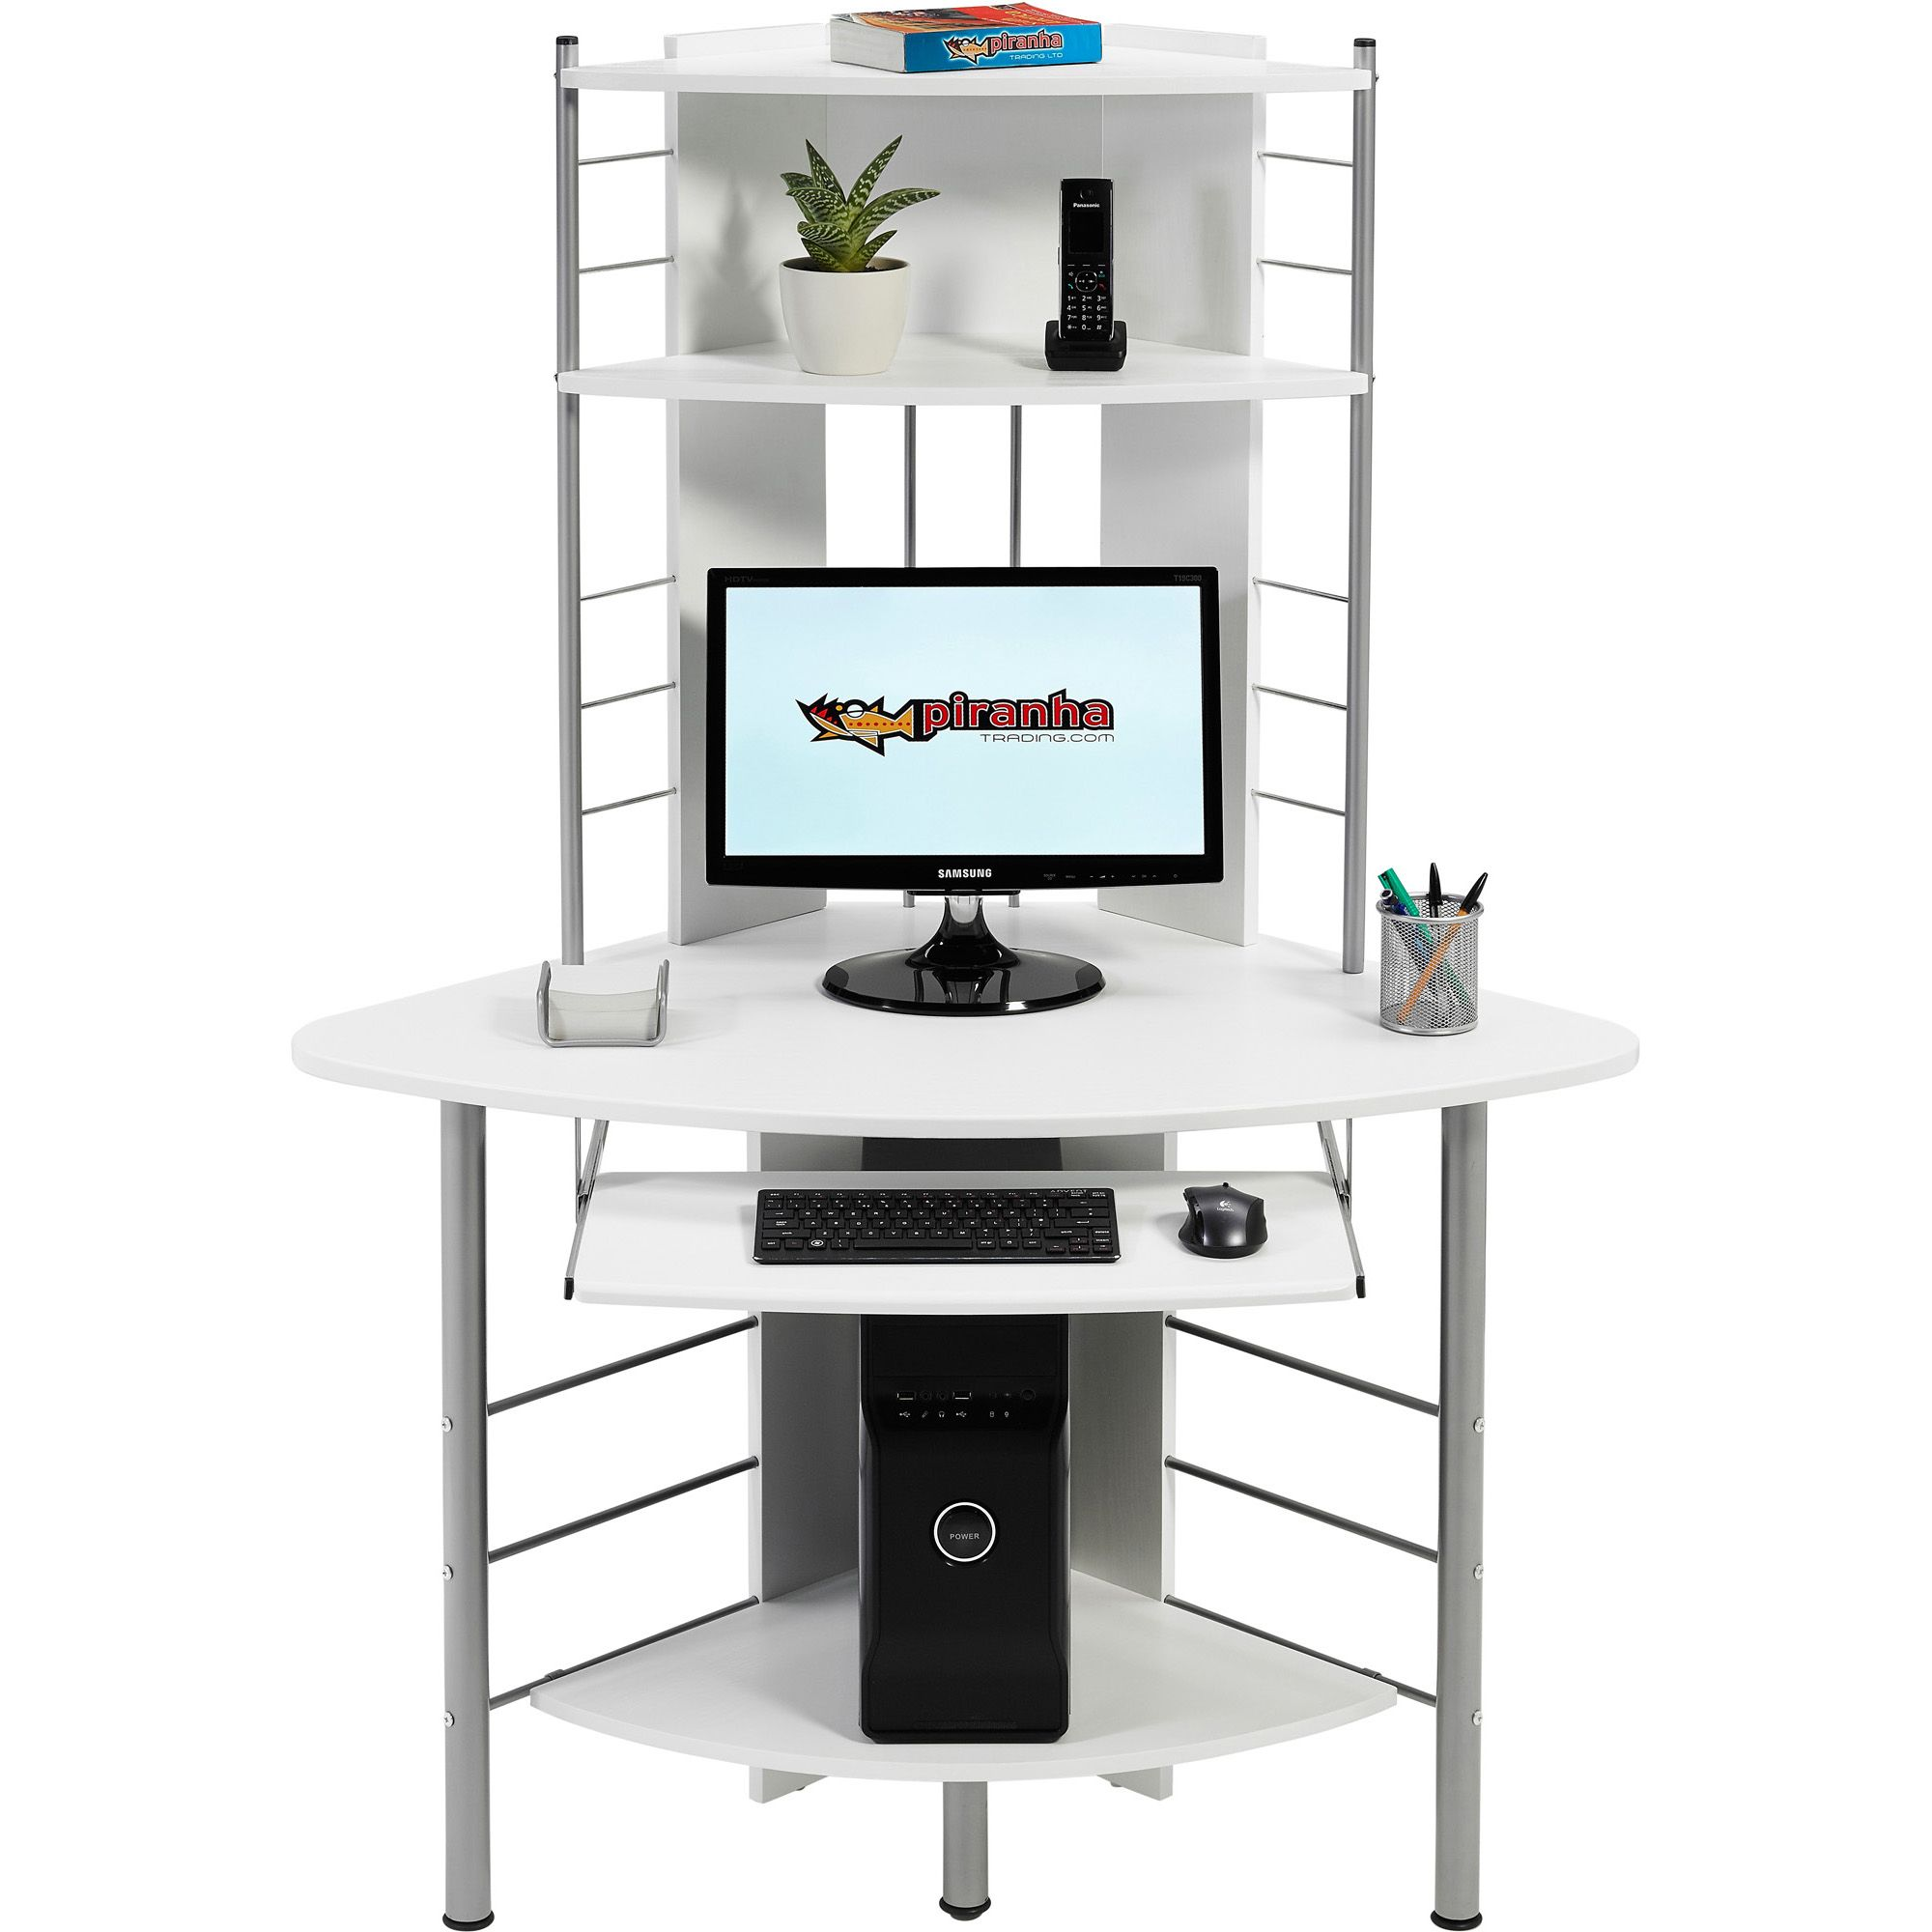 piranha quality compact corner computer desk with shelves for home